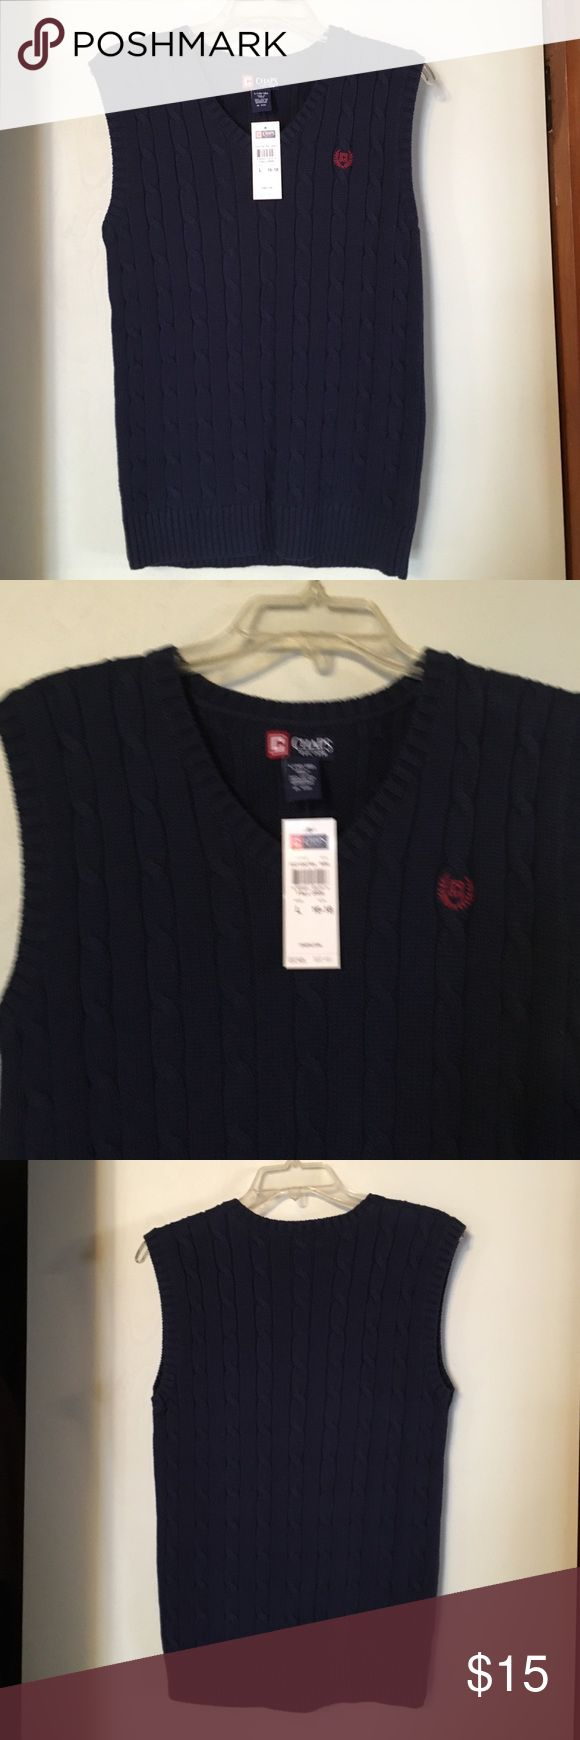 NWT Chaps Boys Navy Blue Sweater Vest L (16-18) NWT Chaps boys navy blue sweater vest in size L (16-18). Retail price $32. Chaps Shirts & Tops Sweaters